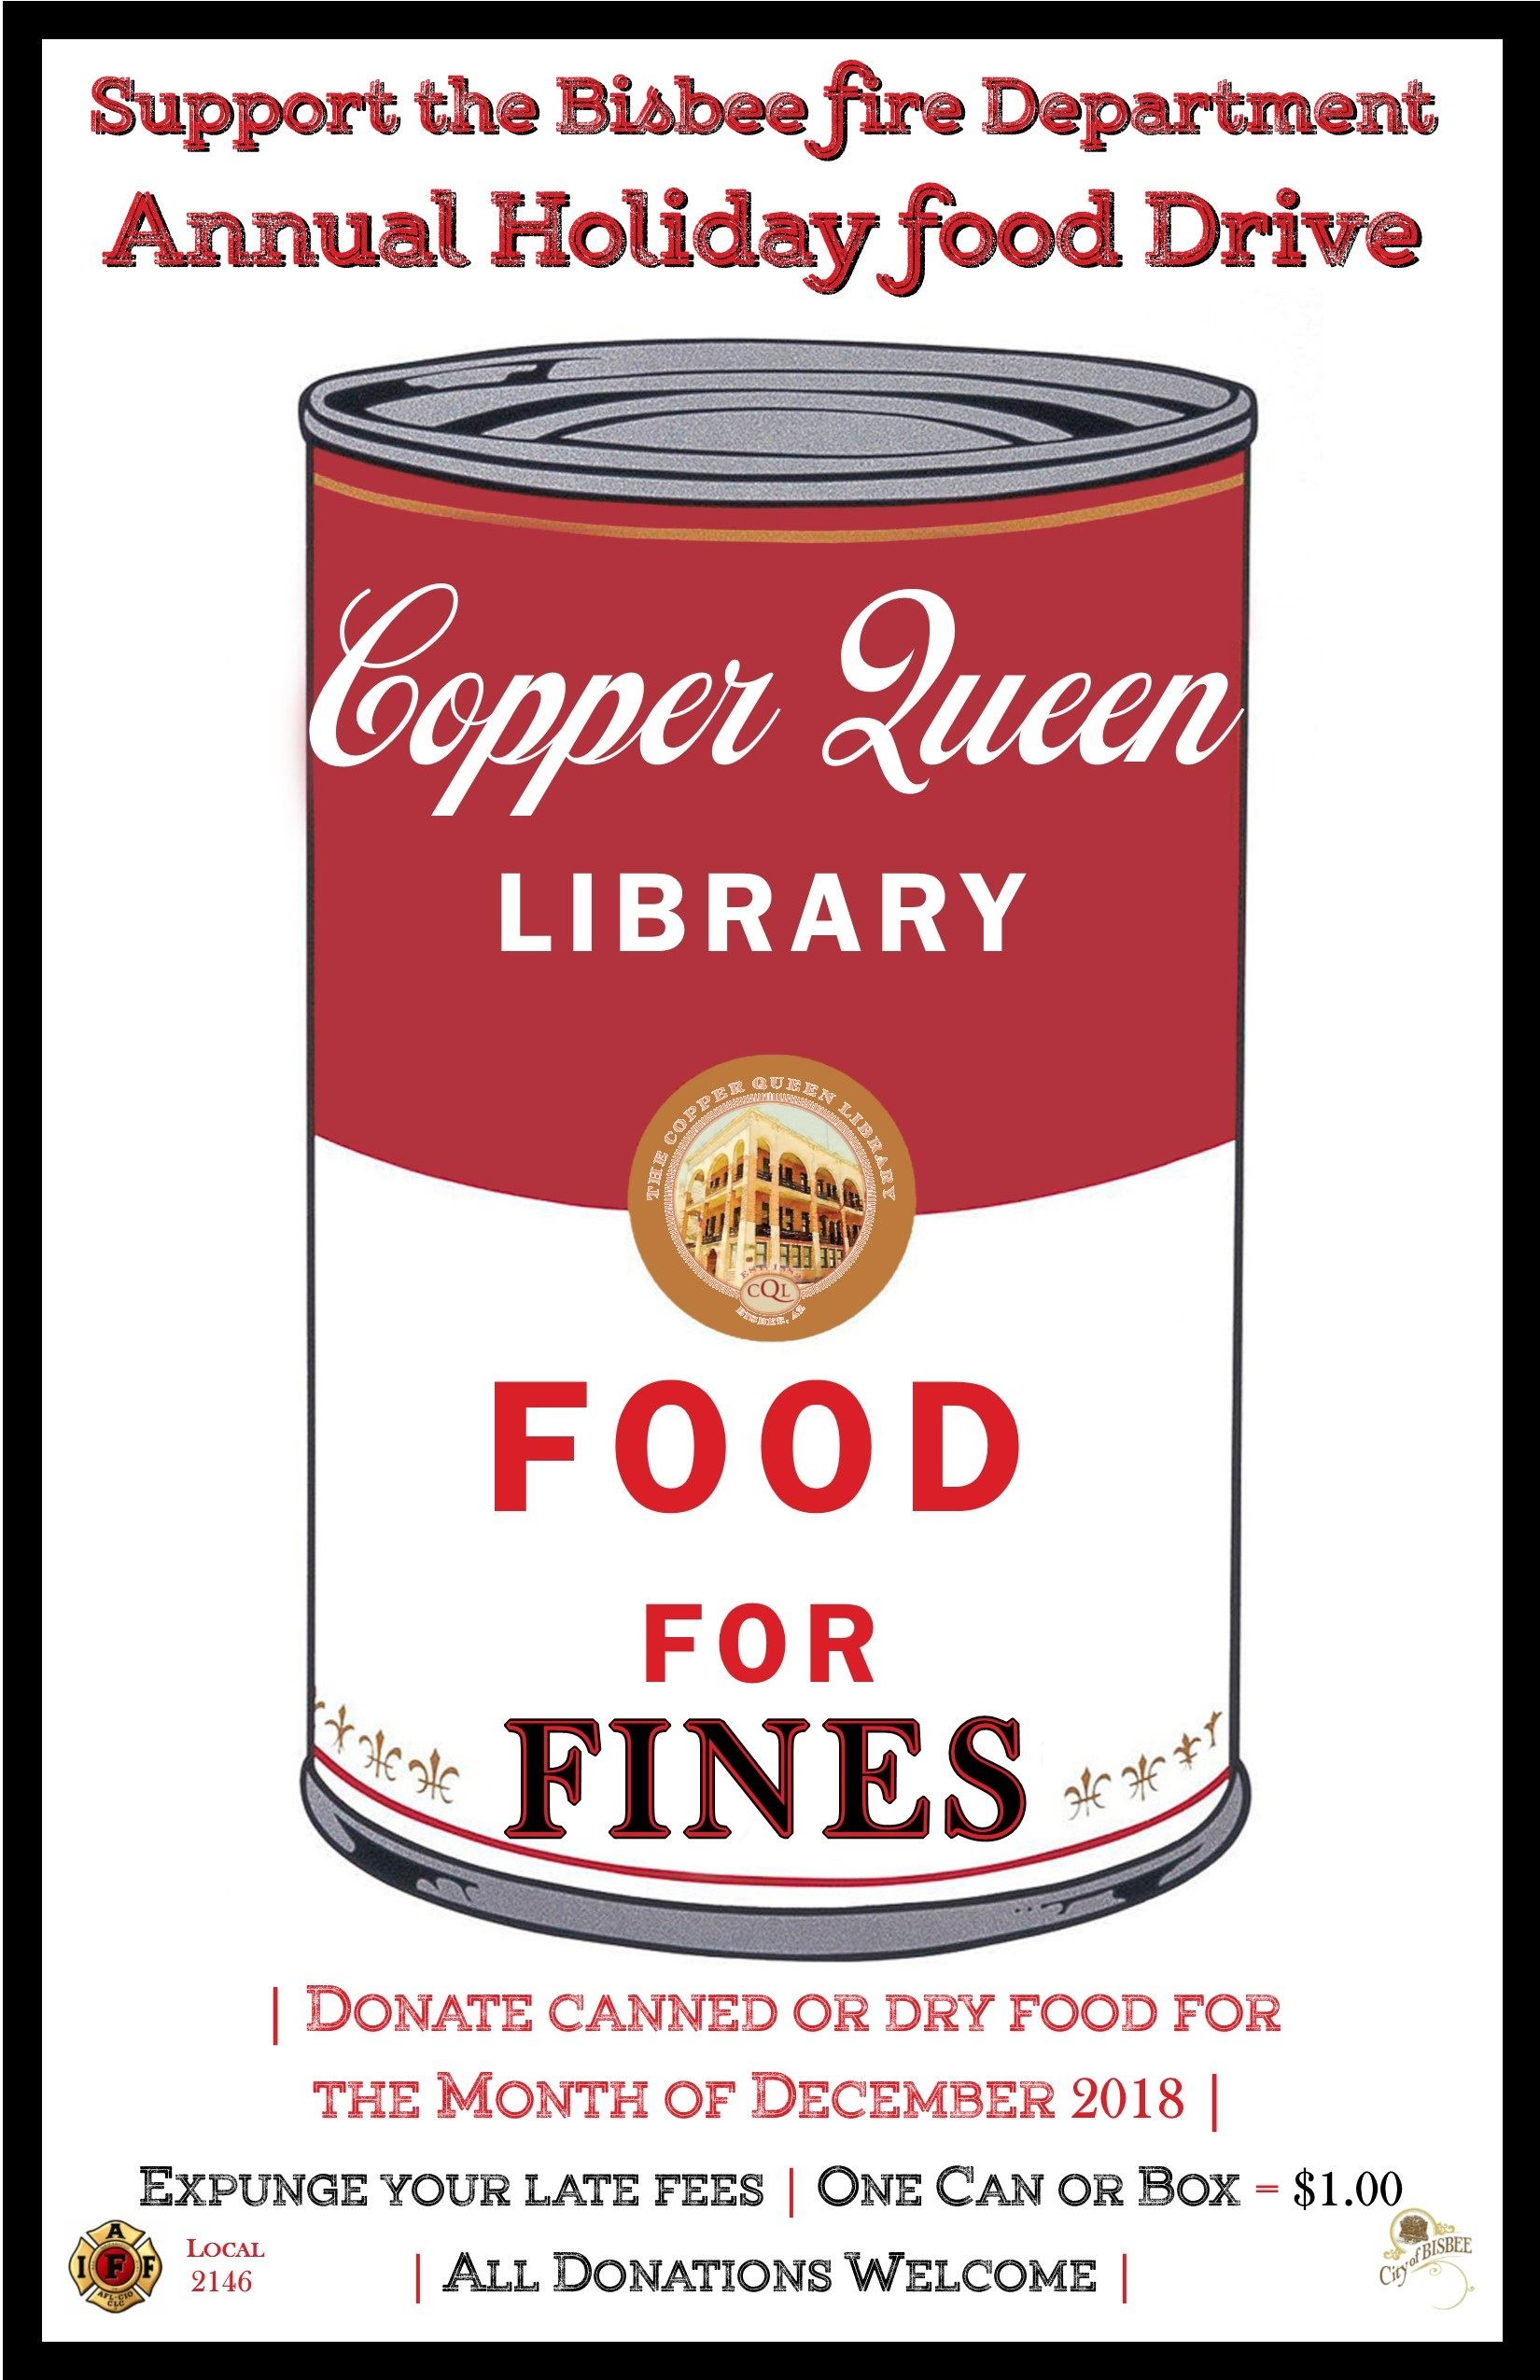 FOOD FOR FINES DEC 2018 11 X 17